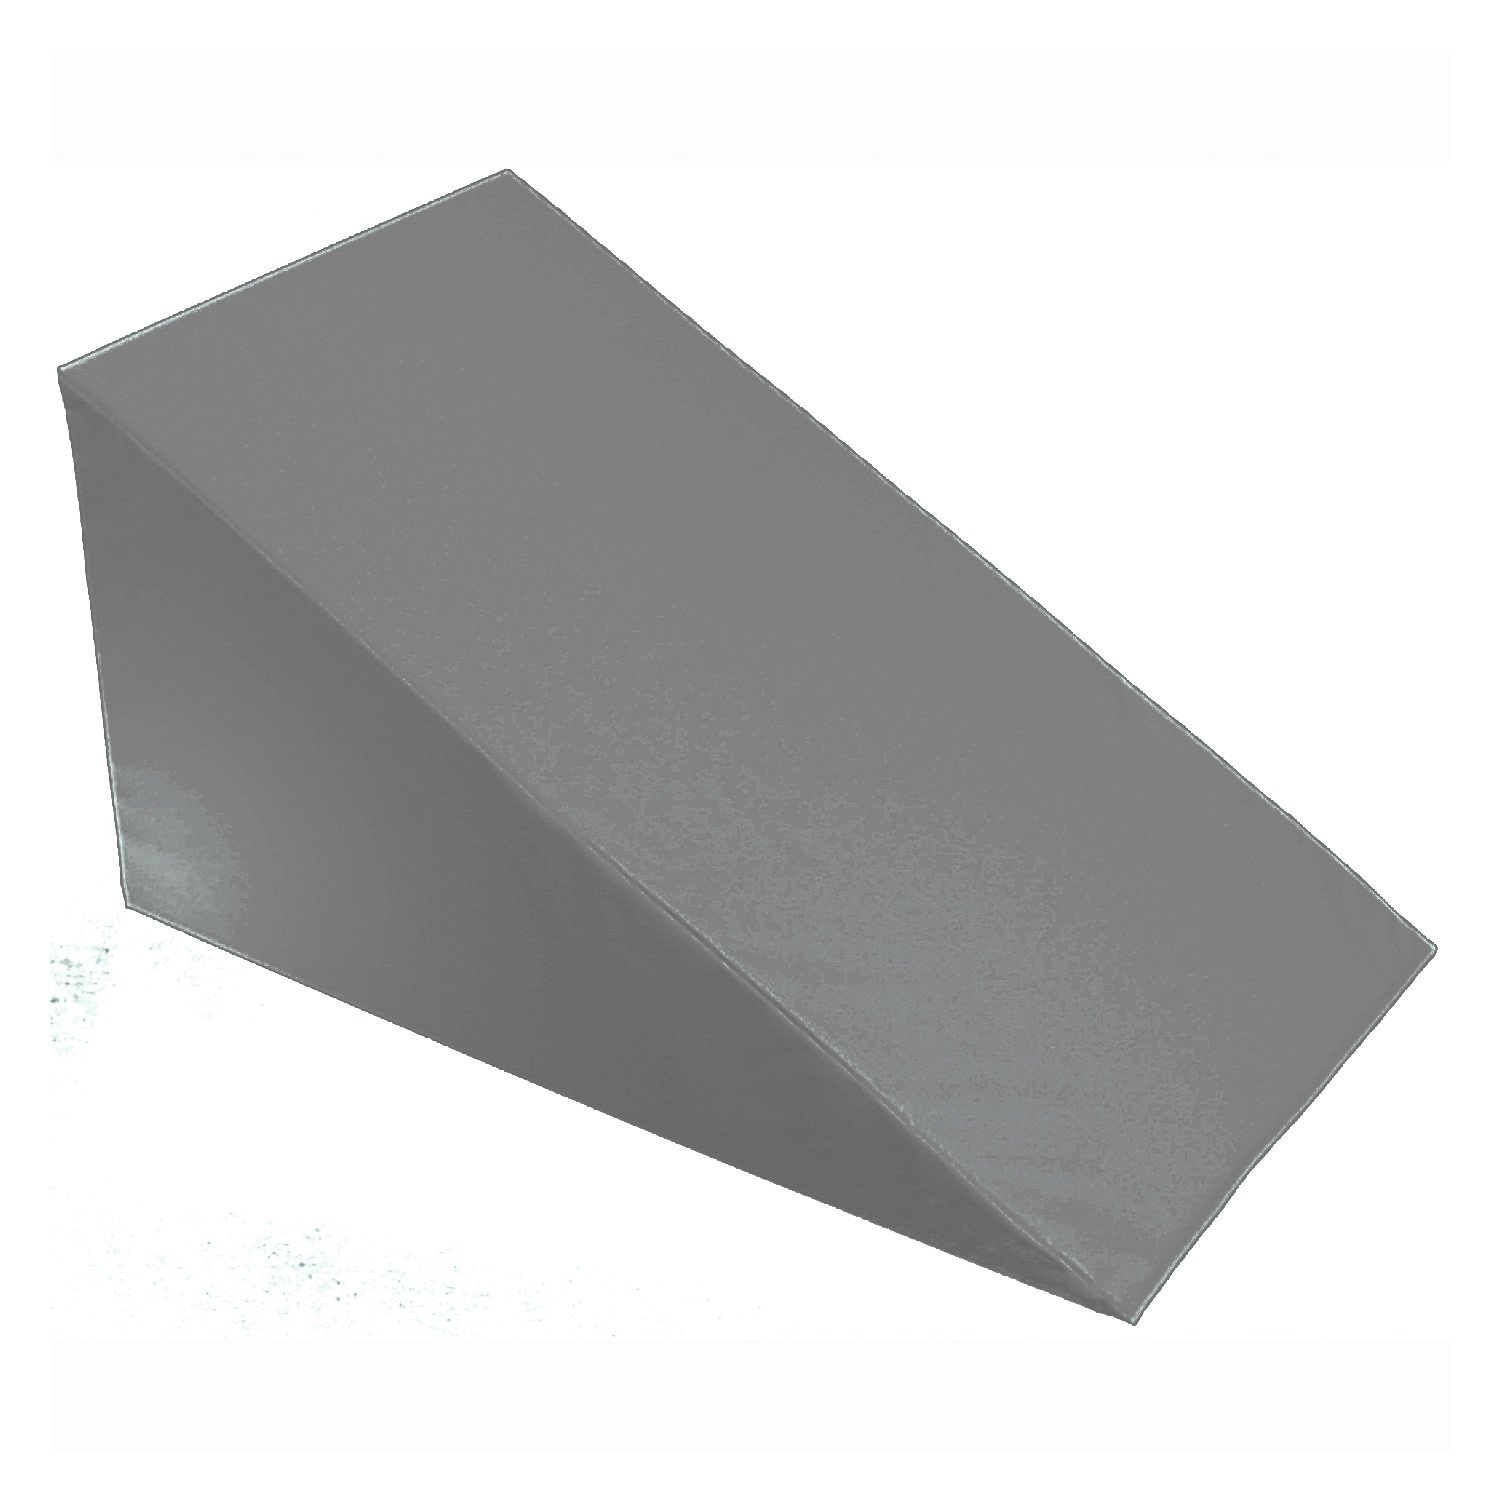 "7"", 10"", 12""- inch Foam Bed Wedge Zippered Cover / Pillow Replacement COVER (24"" X 24"" X 7"", Smoky)"